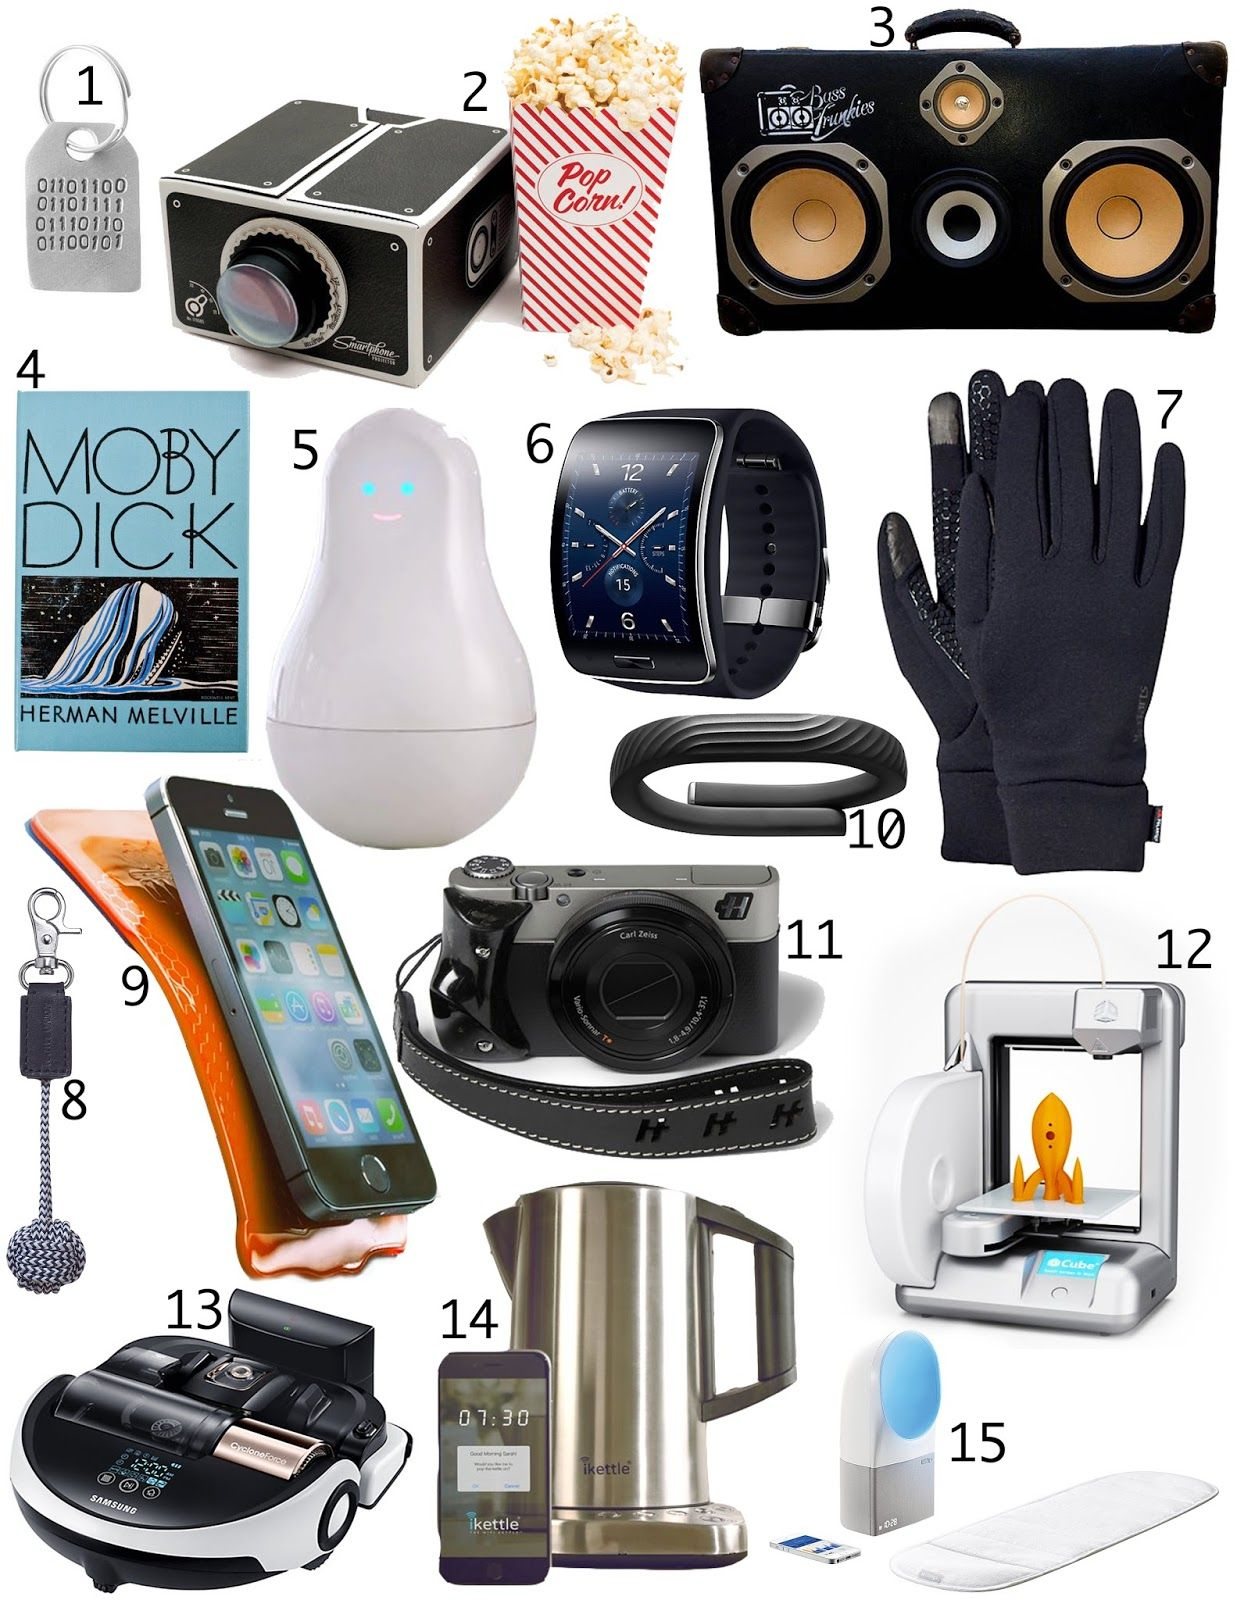 Christmas Gift Guide 2014 | Christmas gift guide, Christmas gifts ...